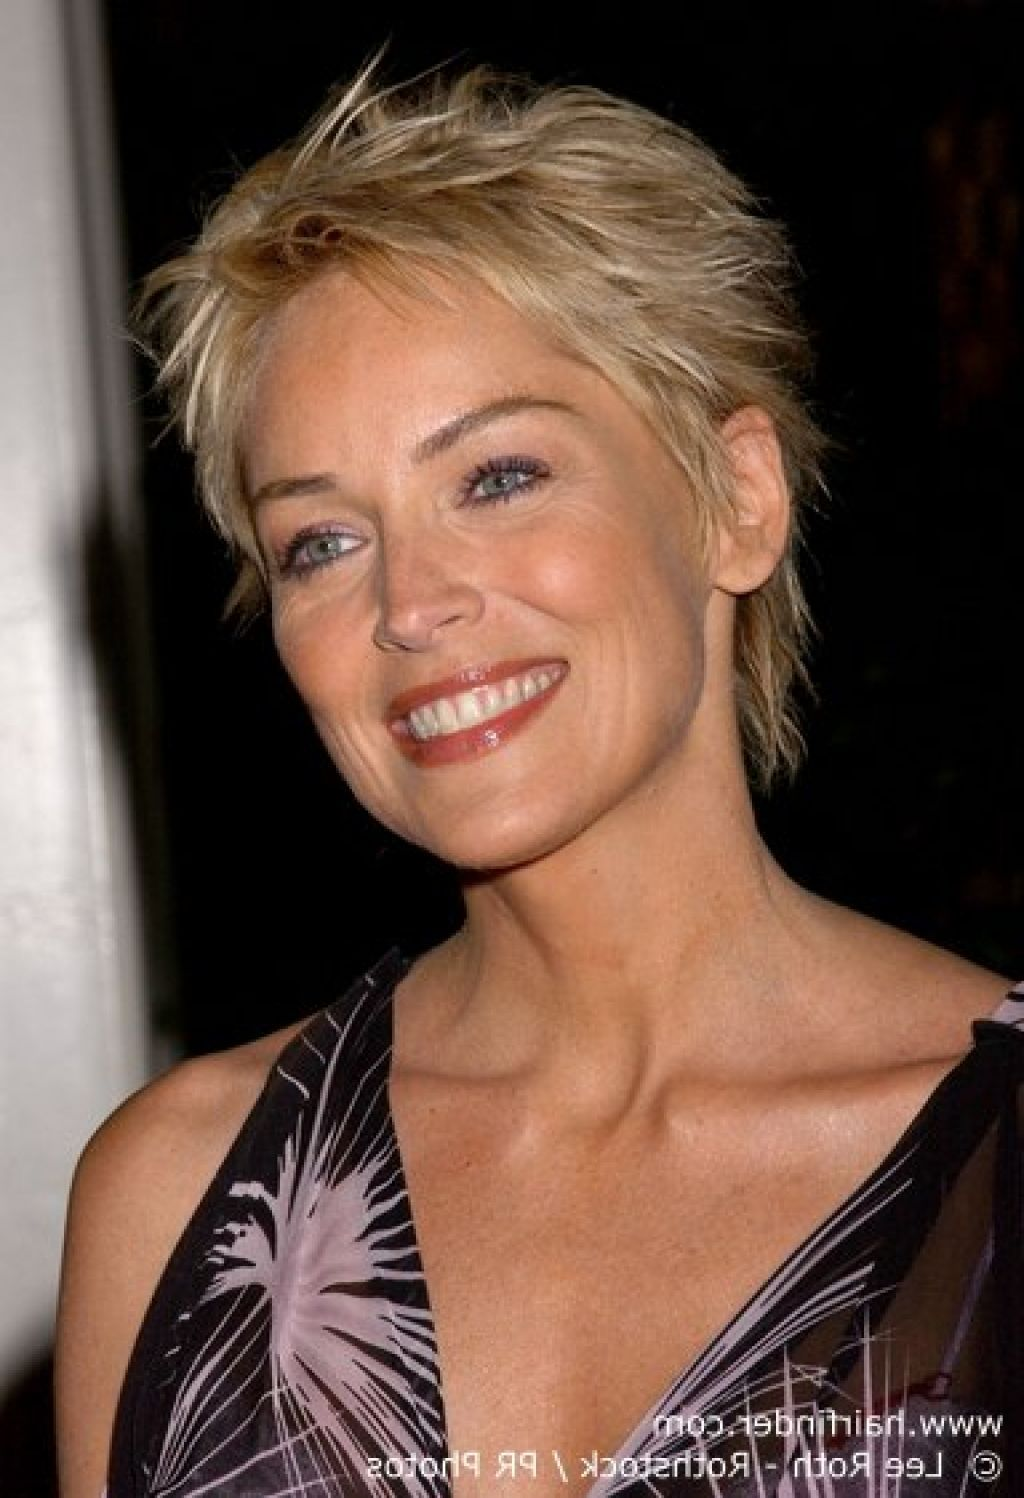 short hairstyles like sharon stone 2015 | hair in 2019